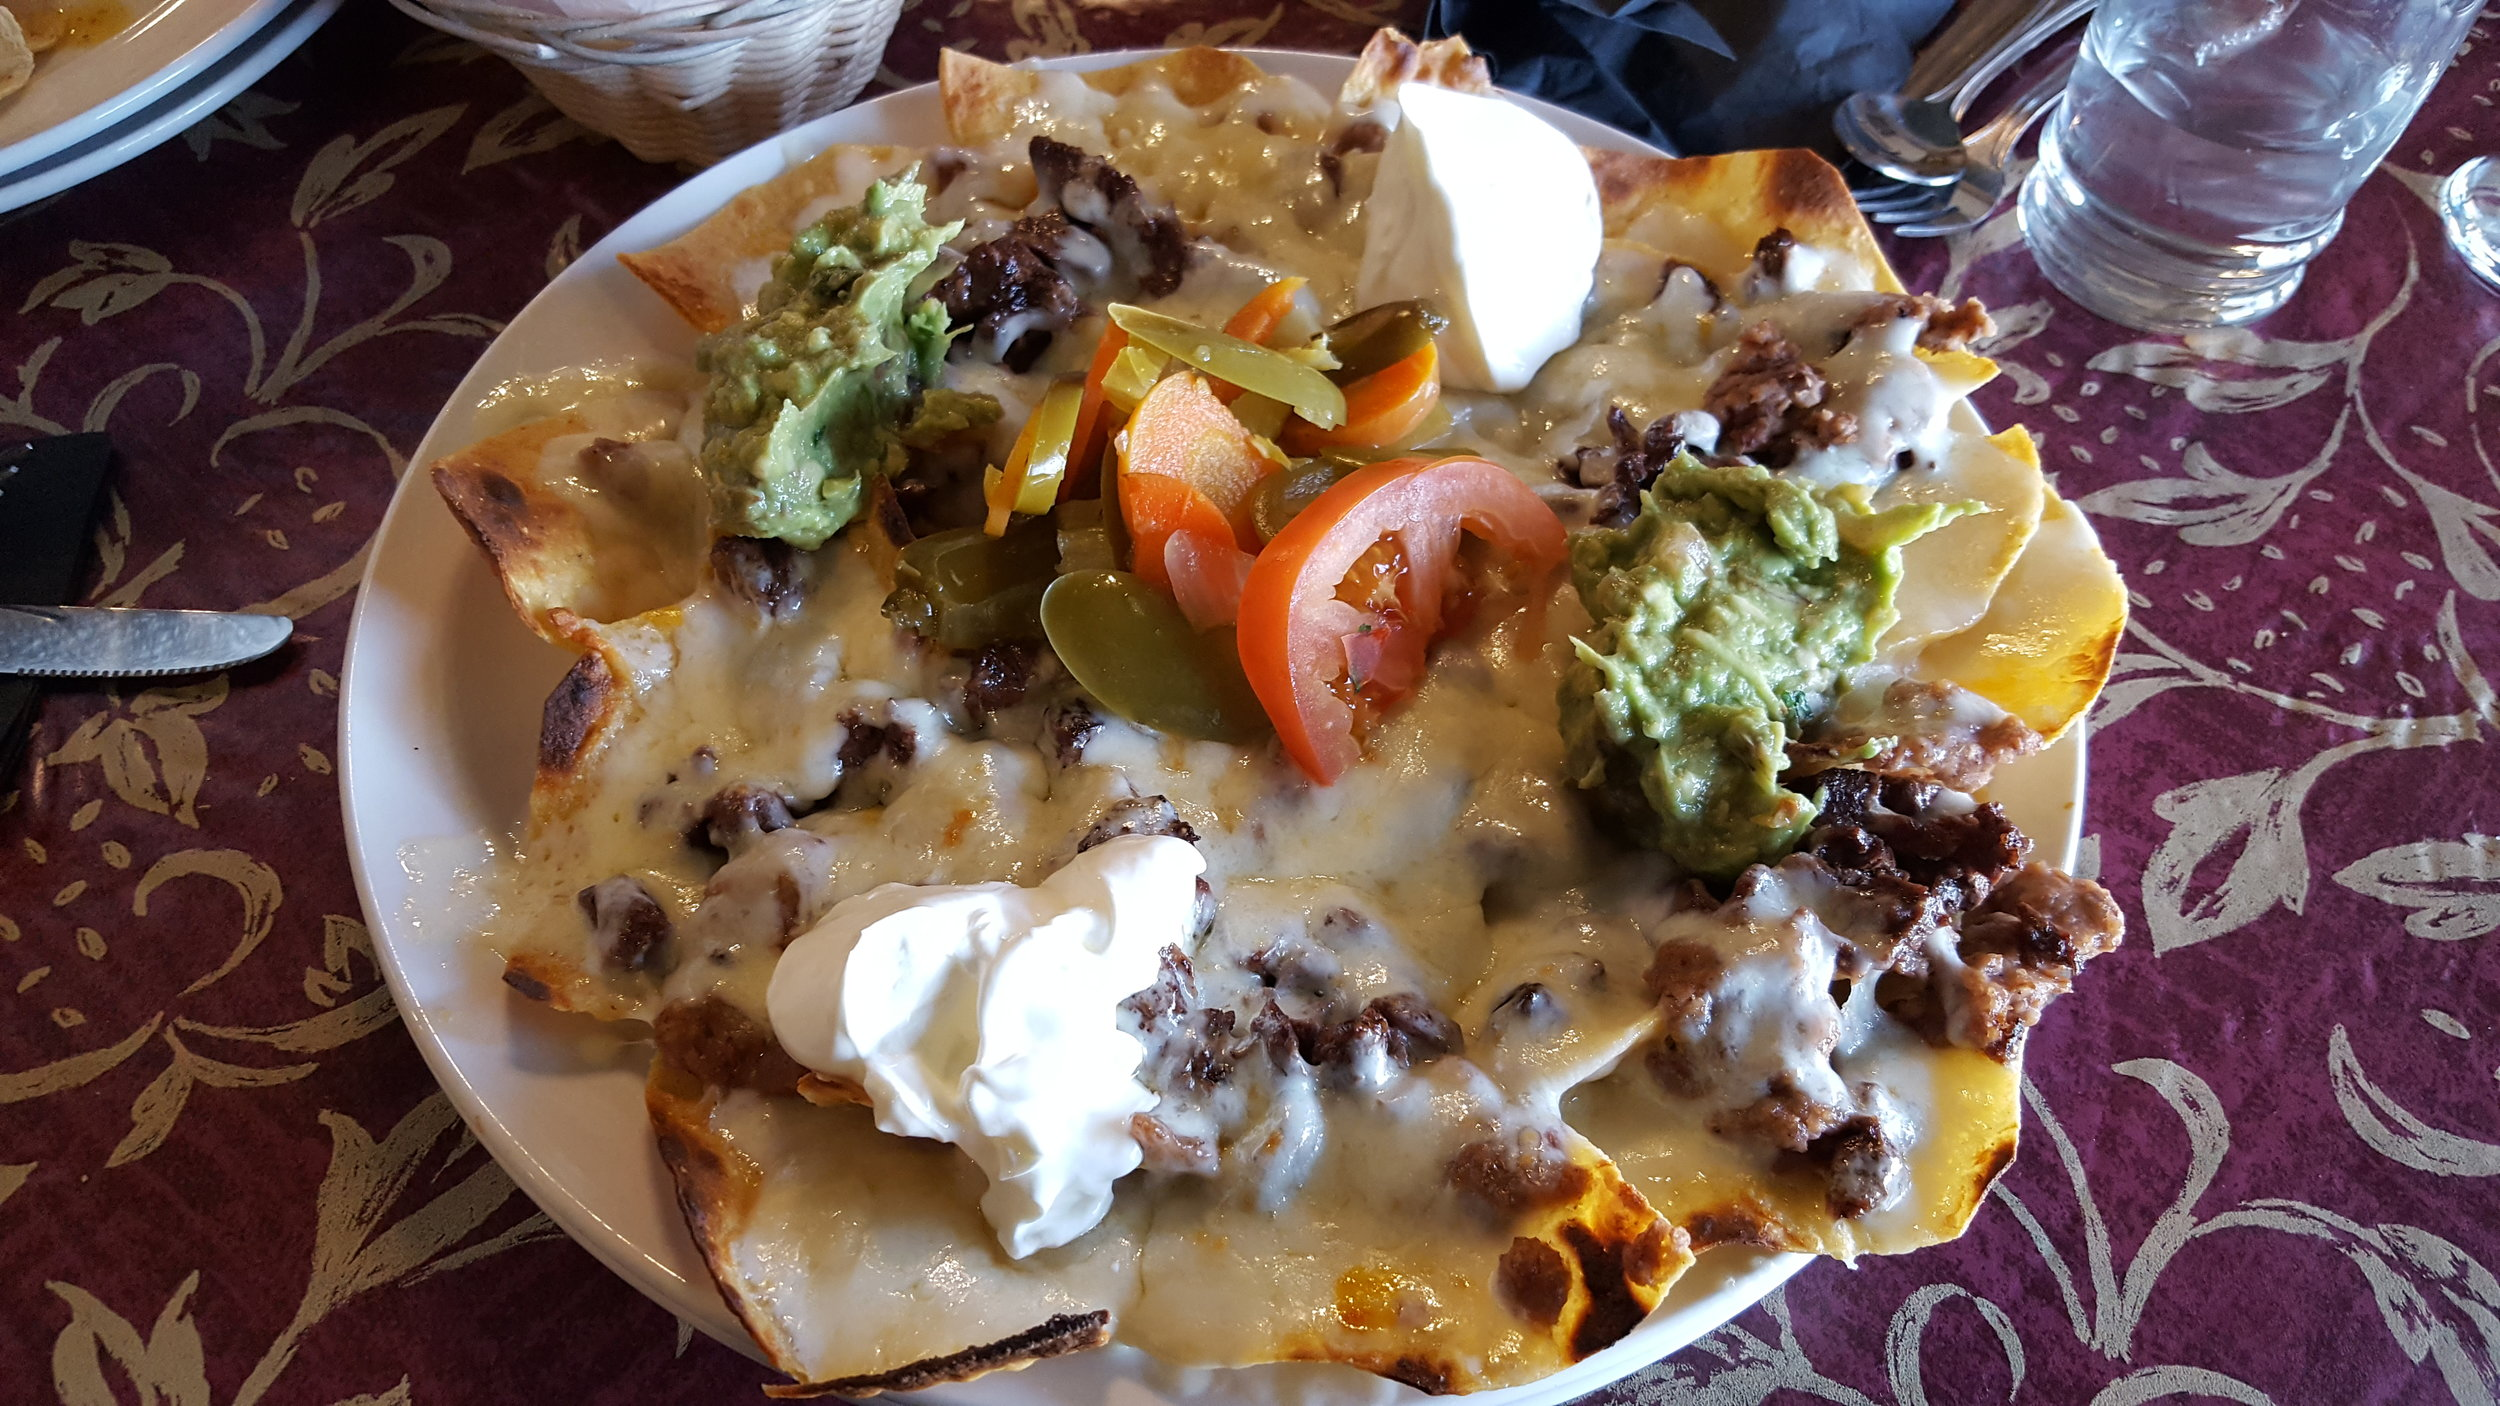 Fresh Tortilla Chips, Beans, Melted Cheese, Guacamole, Sour Cream, Jalapeno Peppers, Tomatoes, Steak